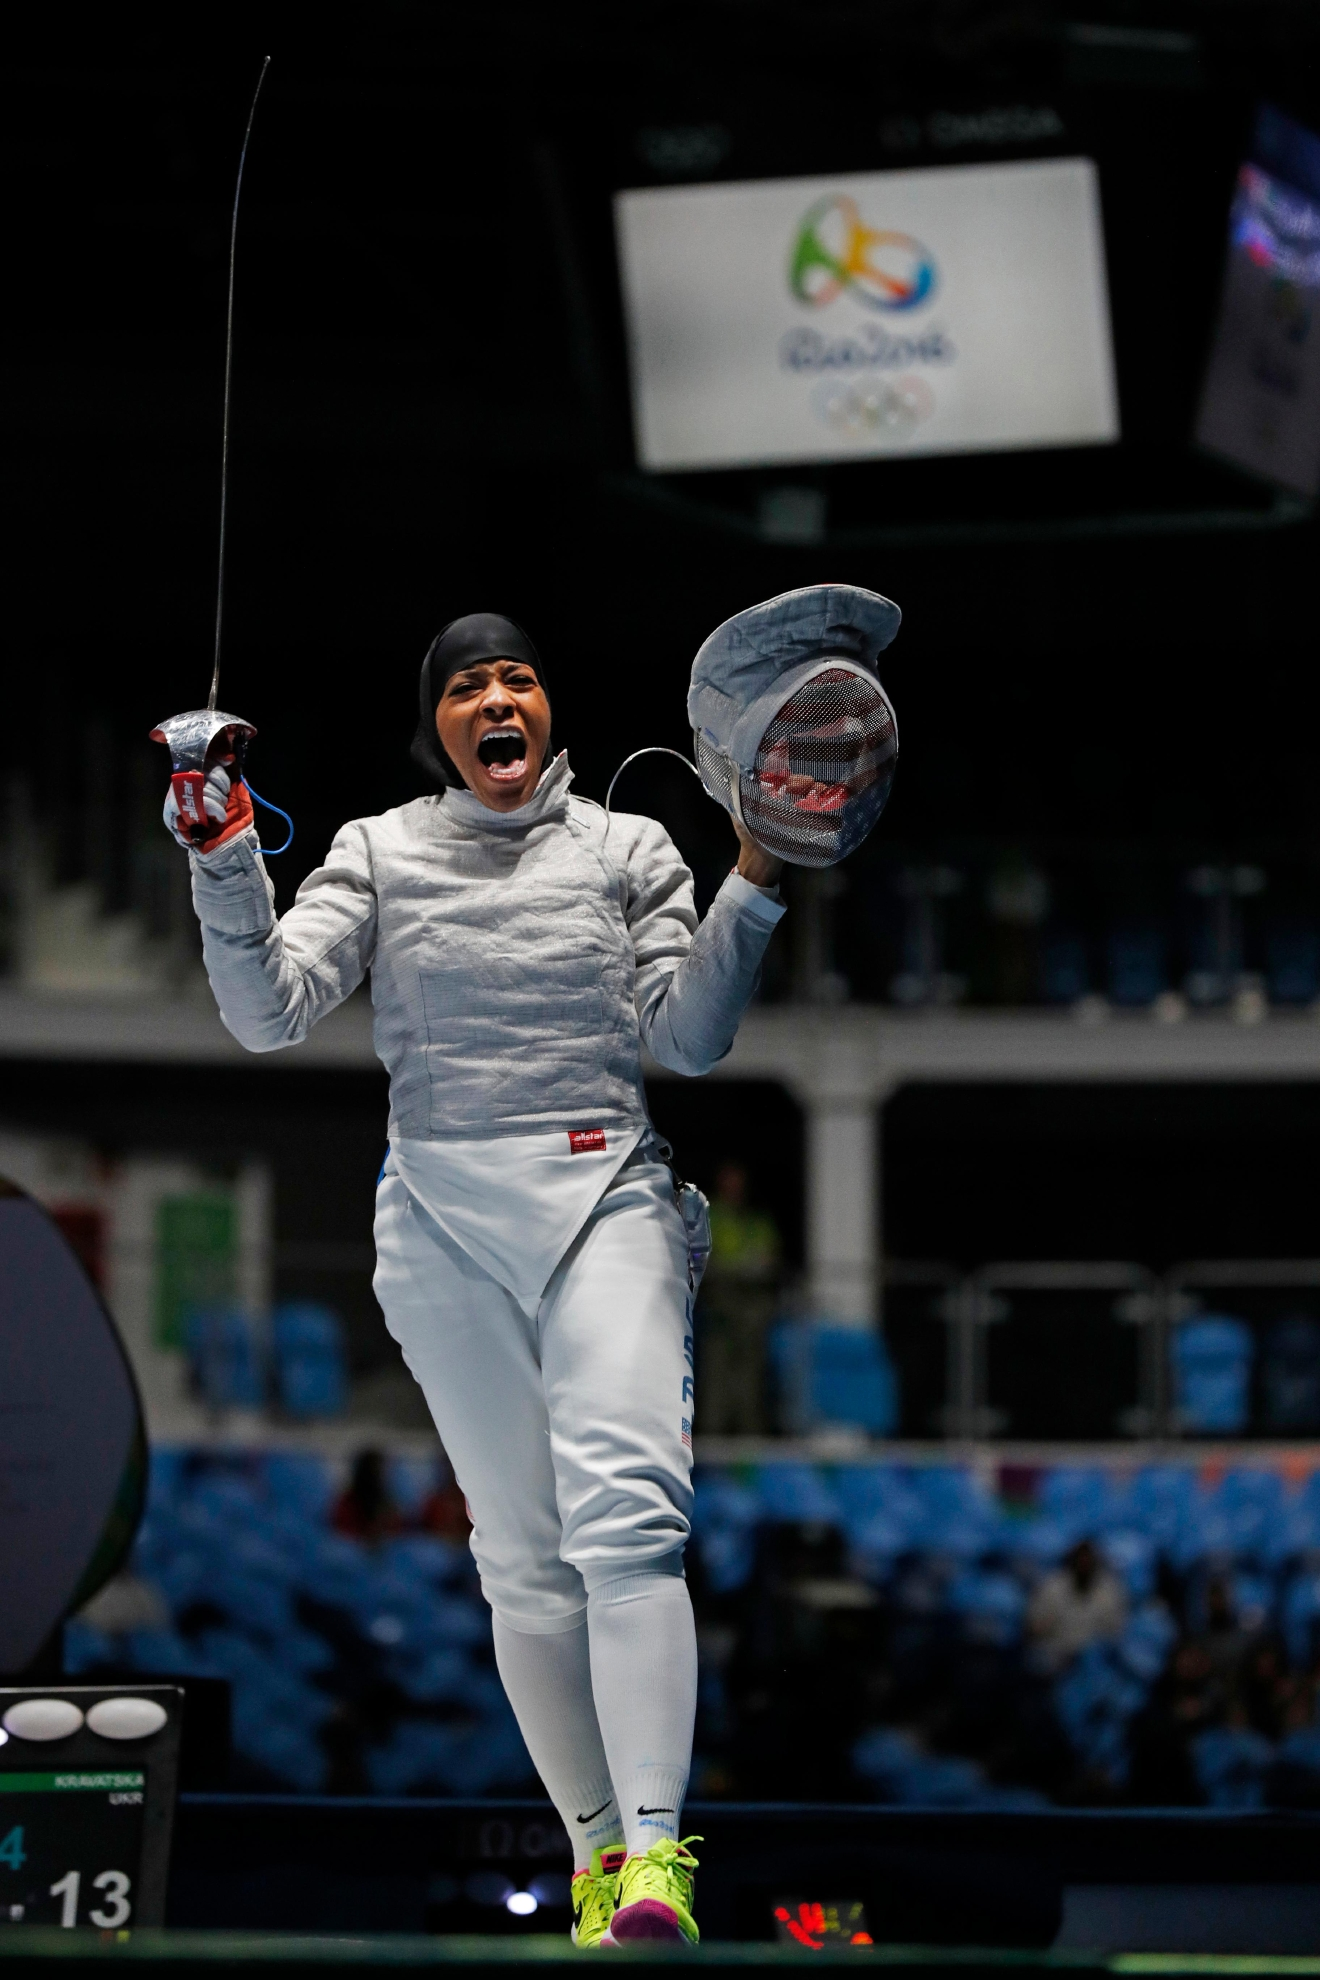 Ibtihaj Muhammad, from the United States, celebrates defeating Olena Kravatska, from Ukraine, during the women's saber individual fencing event at the 2016 Summer Olympics in Rio de Janeiro, Brazil, Monday, Aug. 8, 2016. (AP Photo/Vincent Thian)